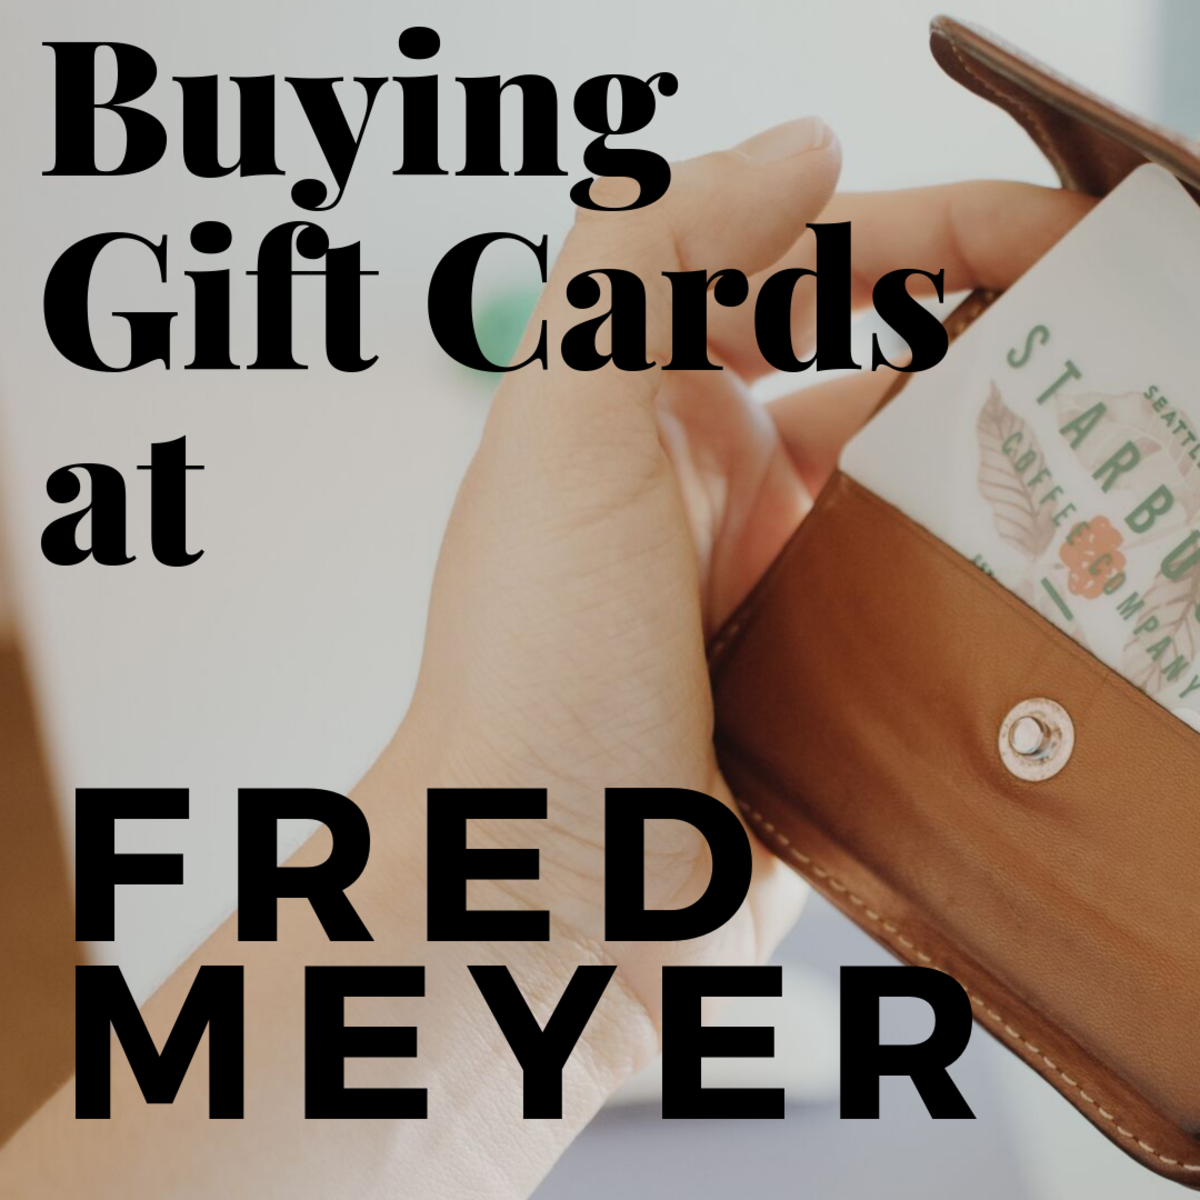 Buying Gift Cards at Fred Meyer